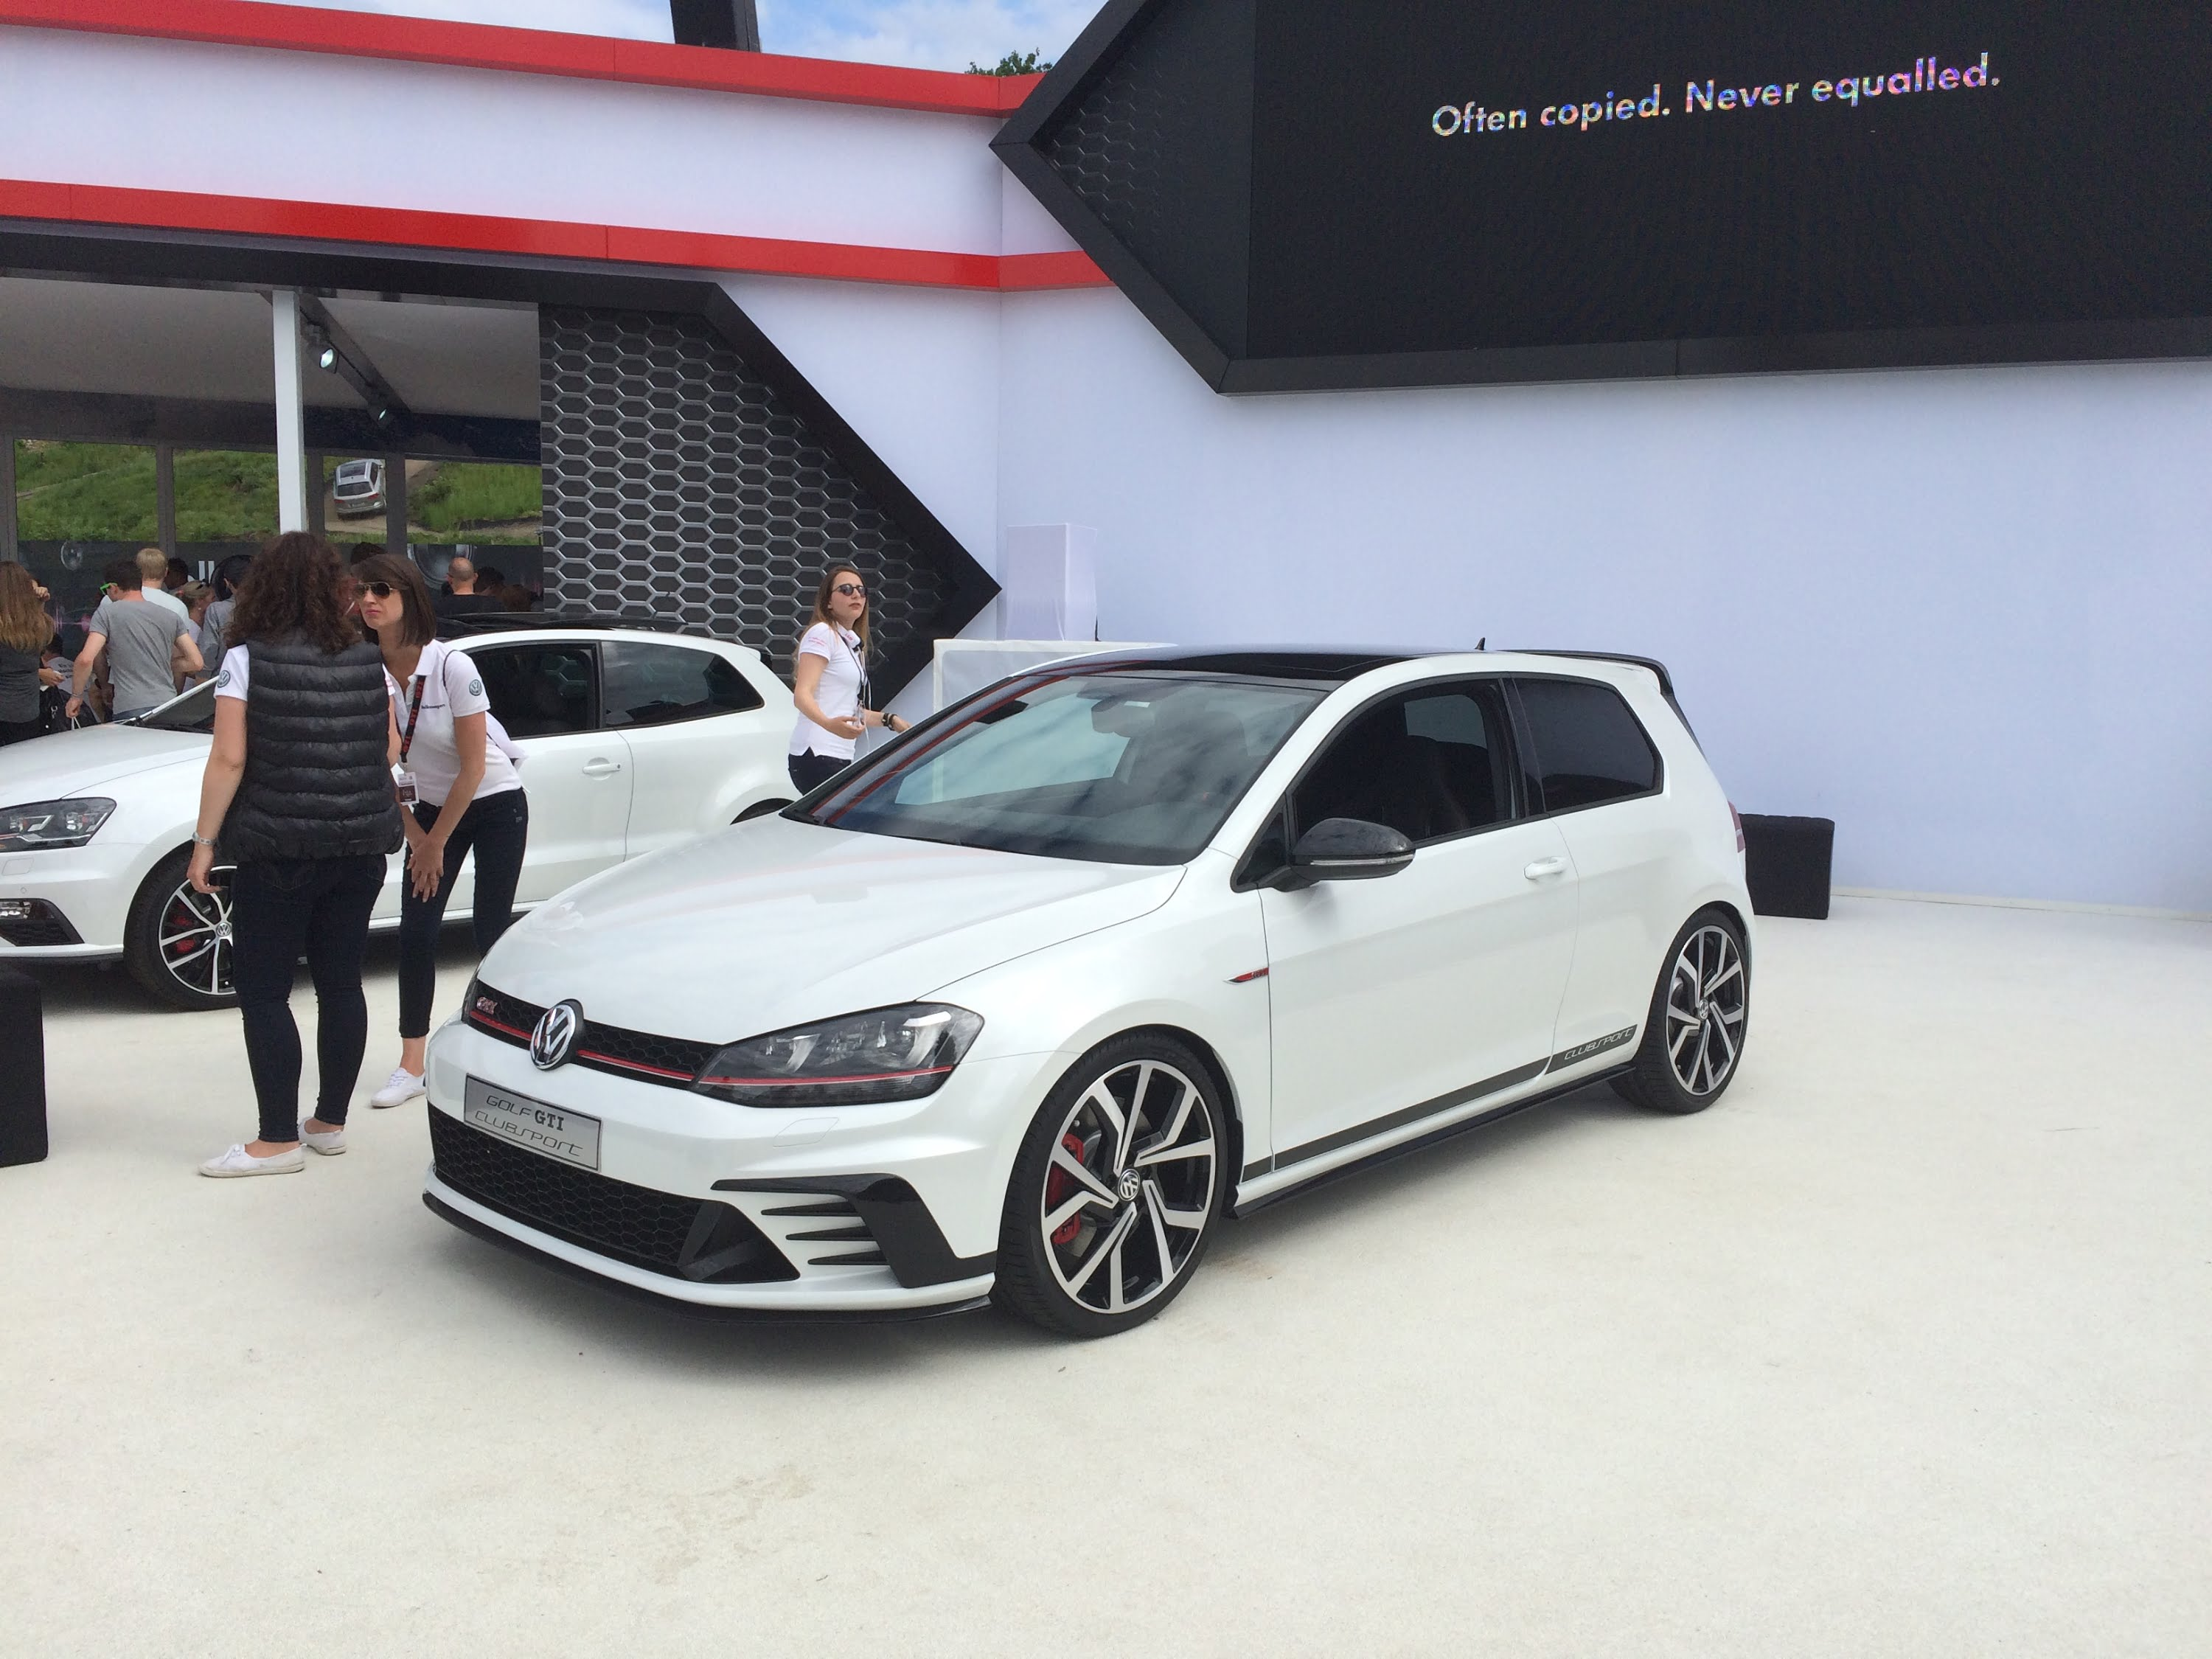 2016 Volkswagen Golf Gti Clubsport Exterior Design (Photo 5 of 10)